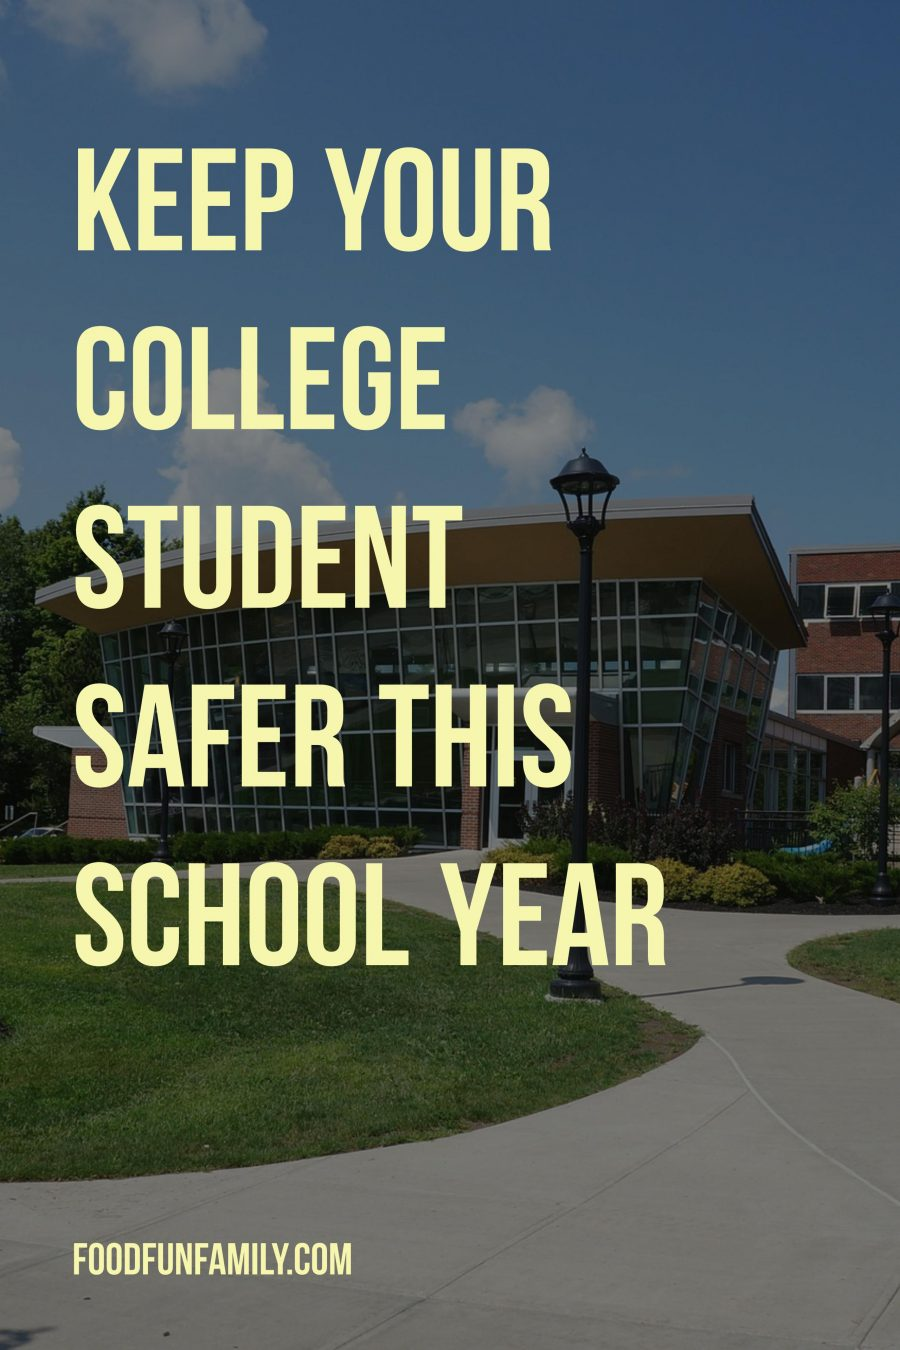 Keep your college student safer this school year